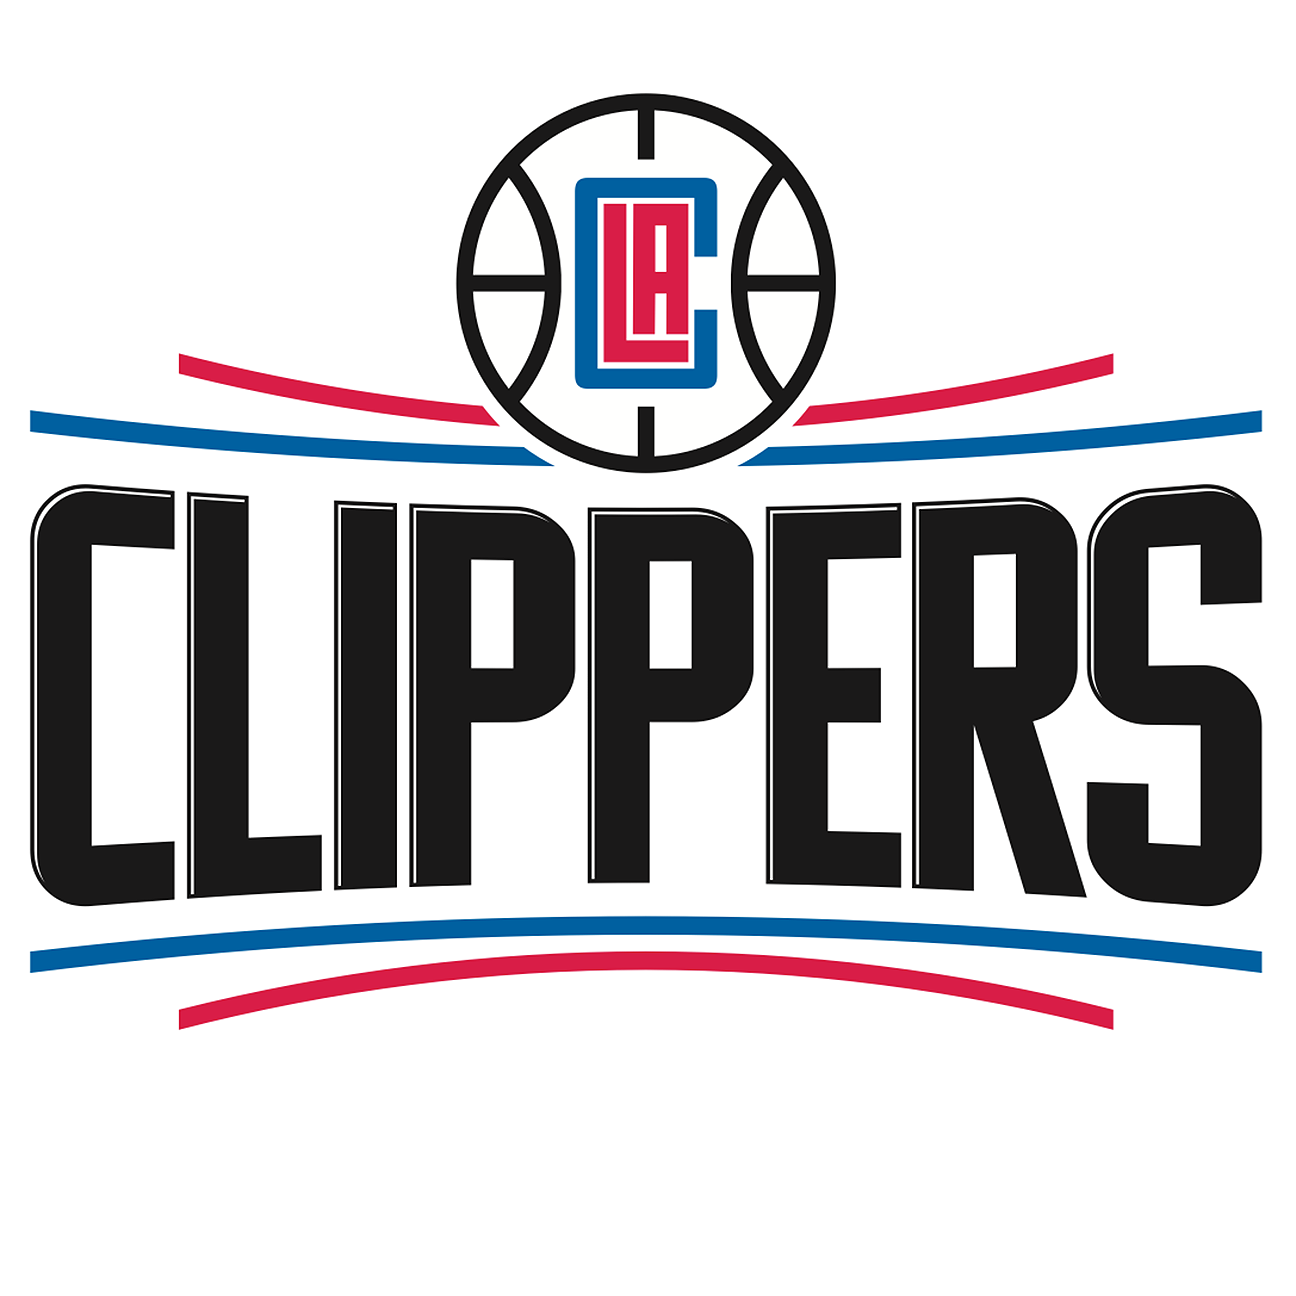 Los Angeles Clippers to unveil new logo, uniforms this week